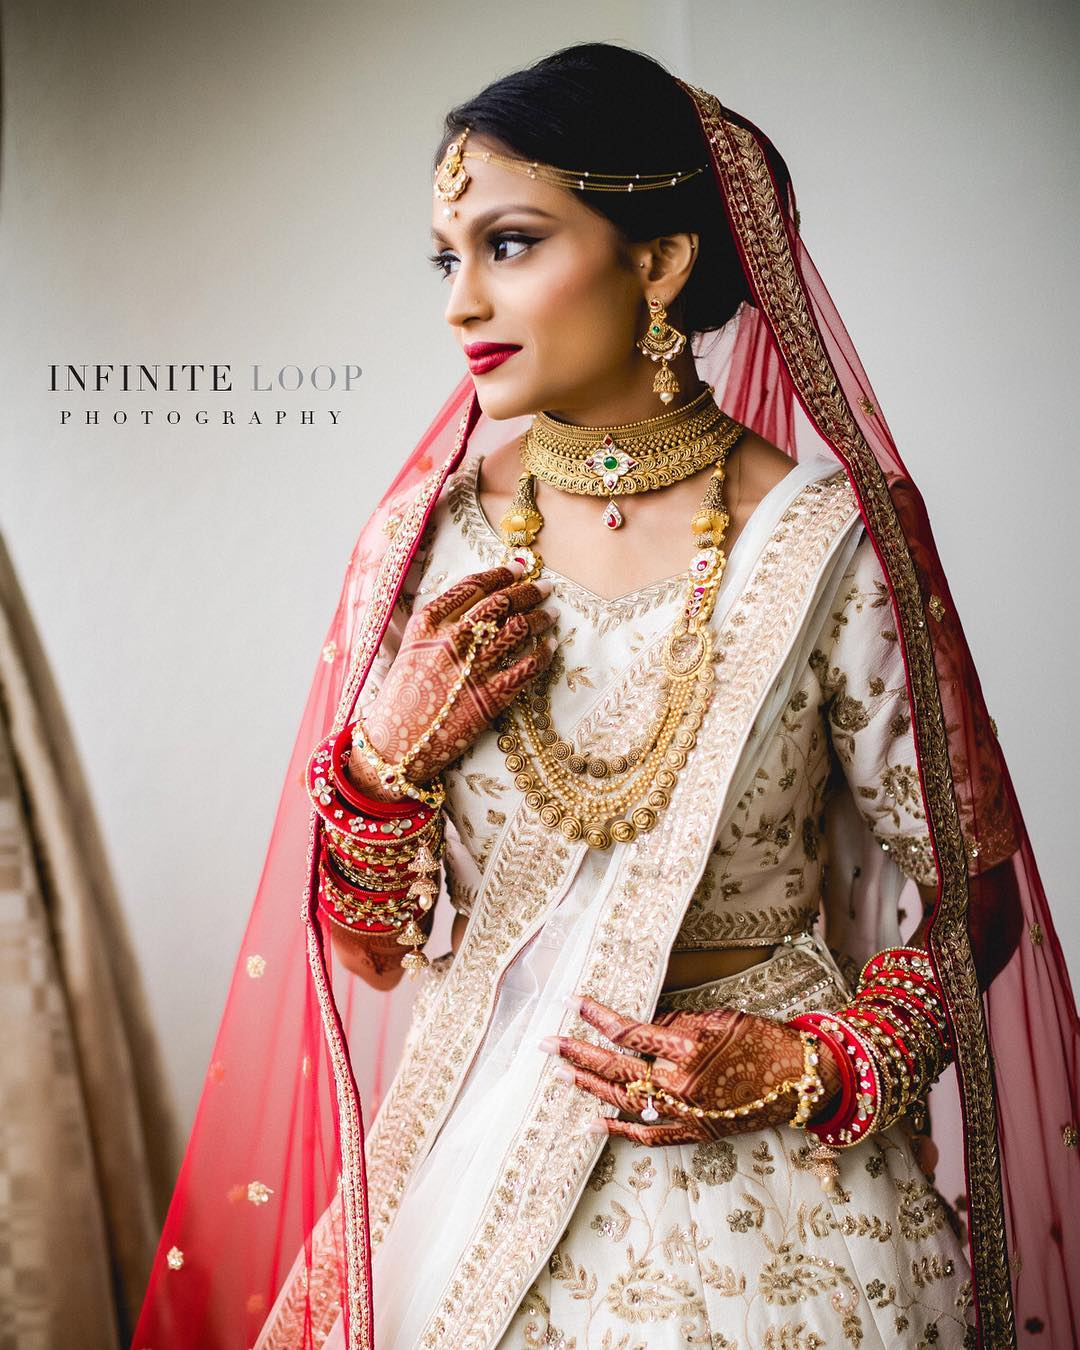 A portrait of a bride dressed in Indian wedding dress